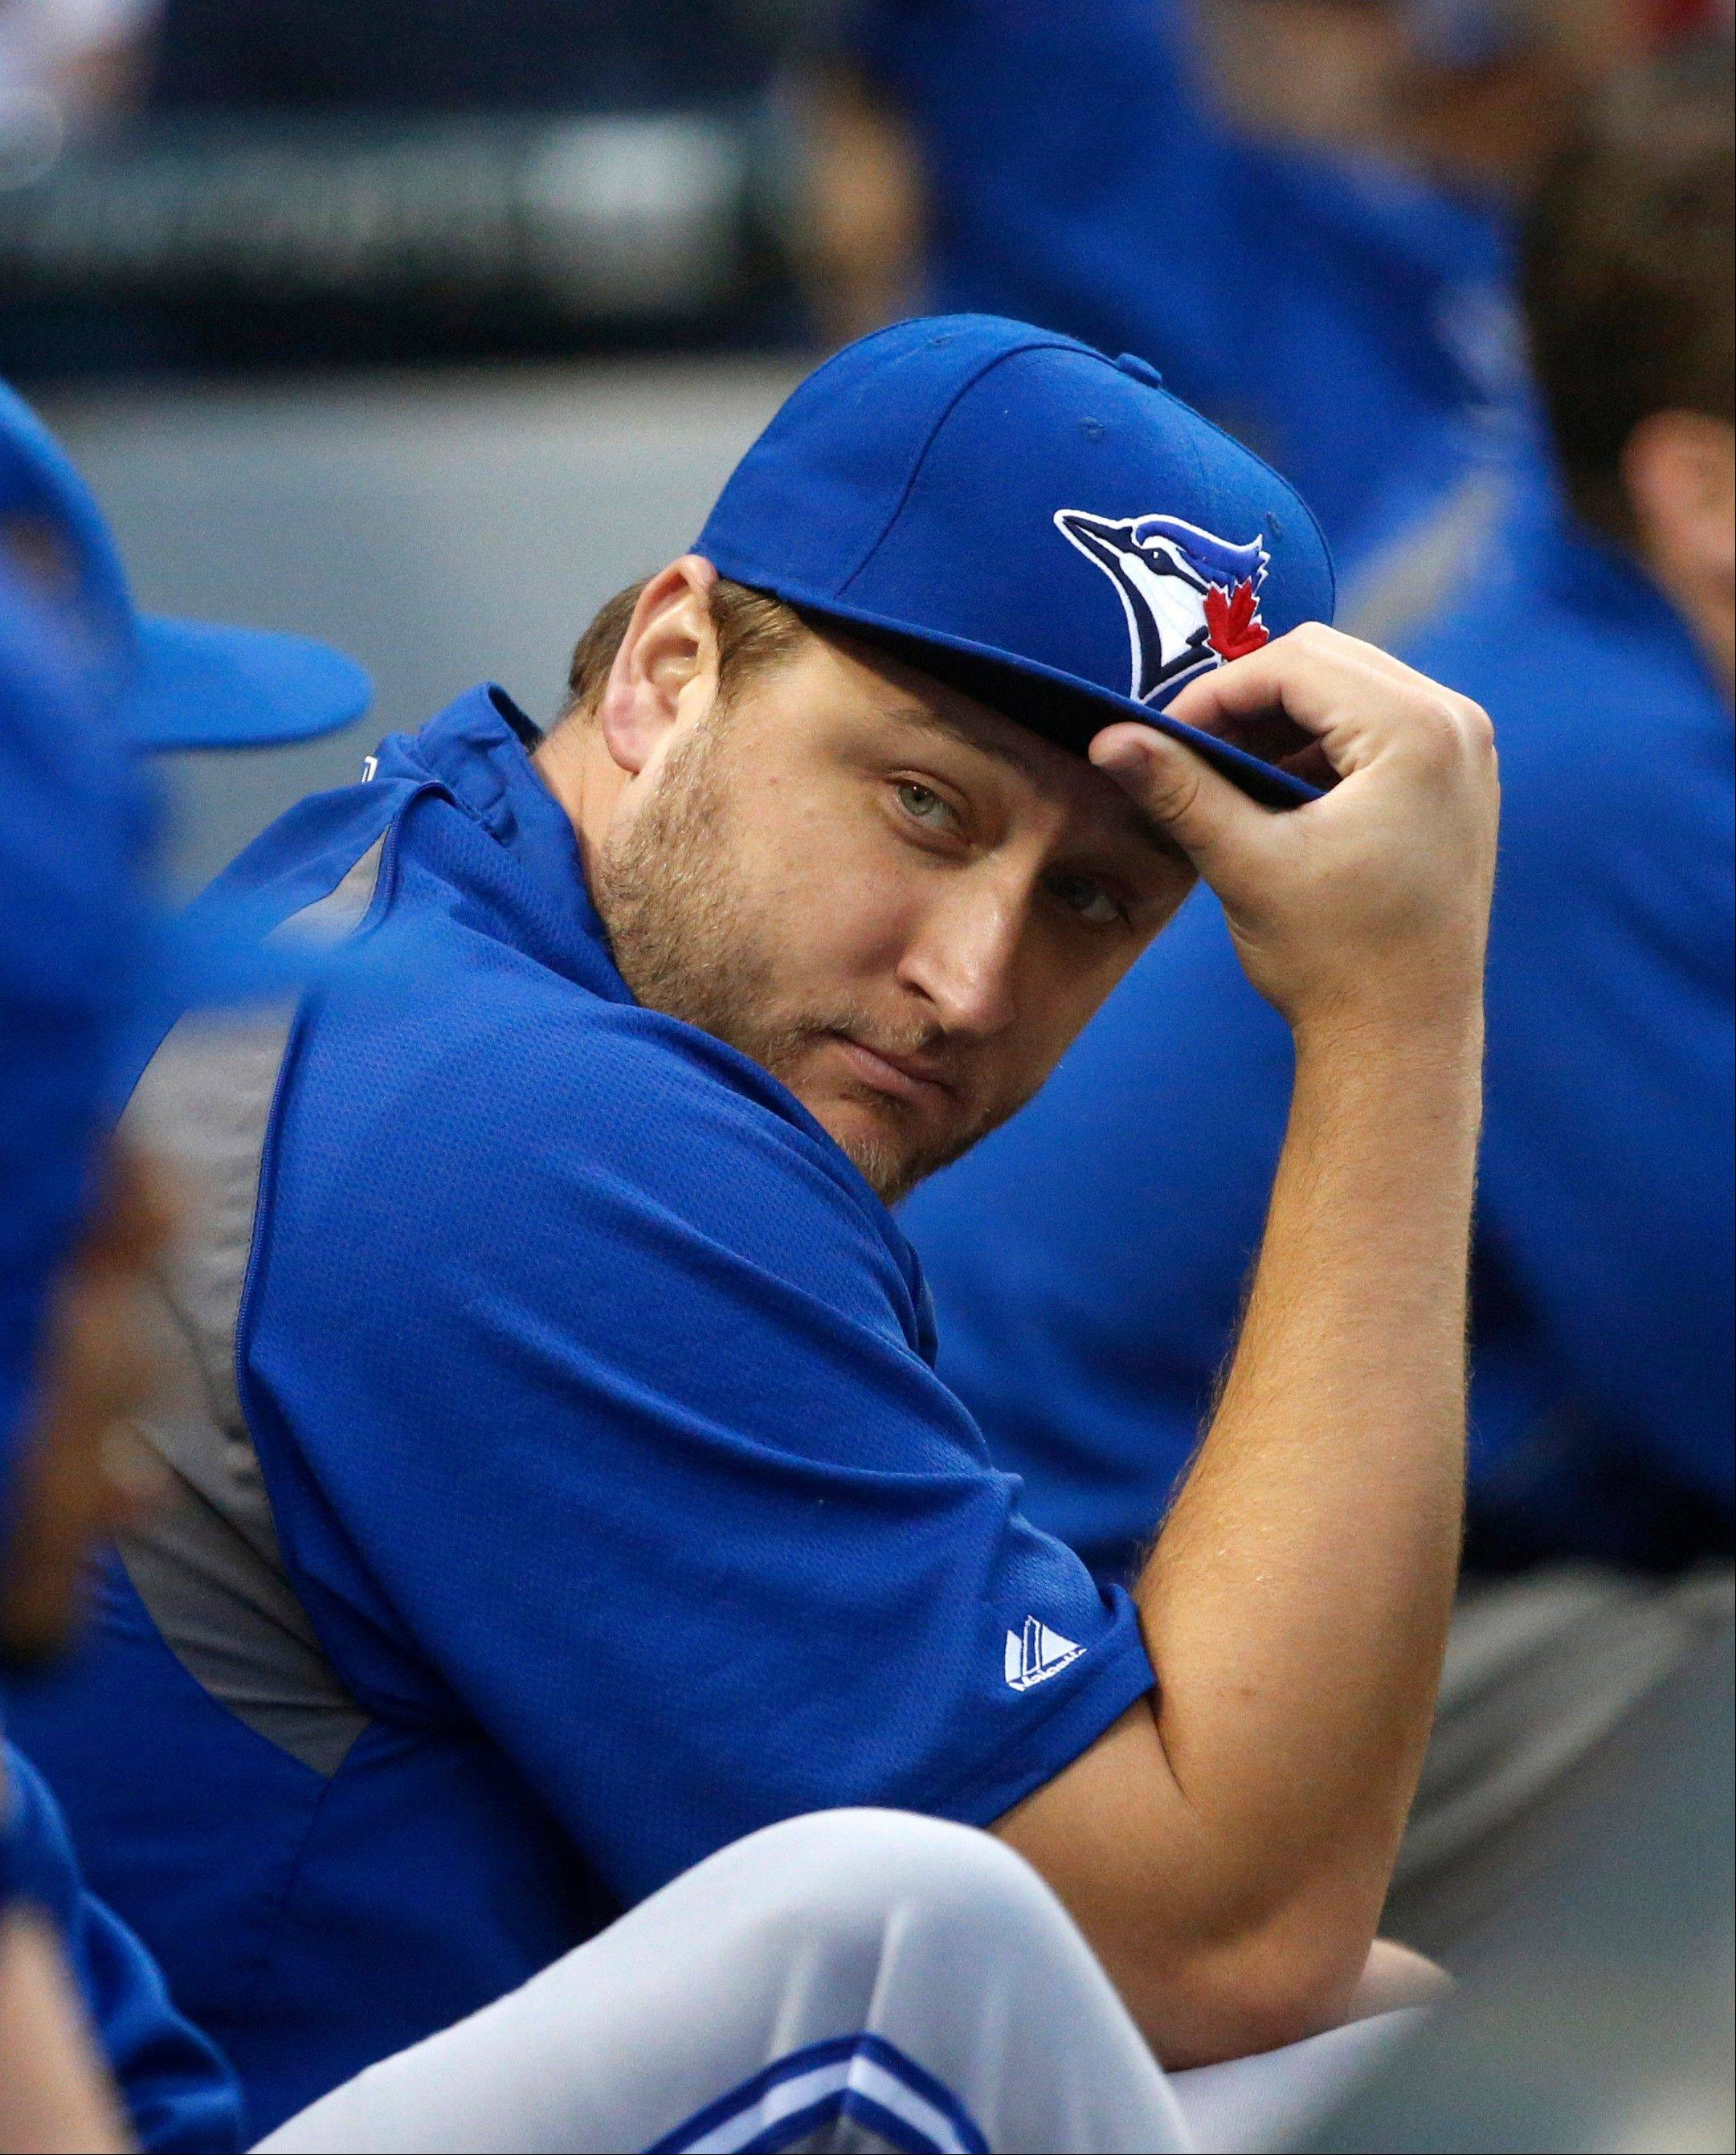 Toronto Blue Jays pitcher Mark Buehrle, former Chicago White Sox ace, sits in the dugout during the third inning of a baseball game Monday, June 10, 2013, in Chicago. Buehrle returned to U.S. Cellular Field for the first time after leaving the White Sox at the end of the 2011 season.